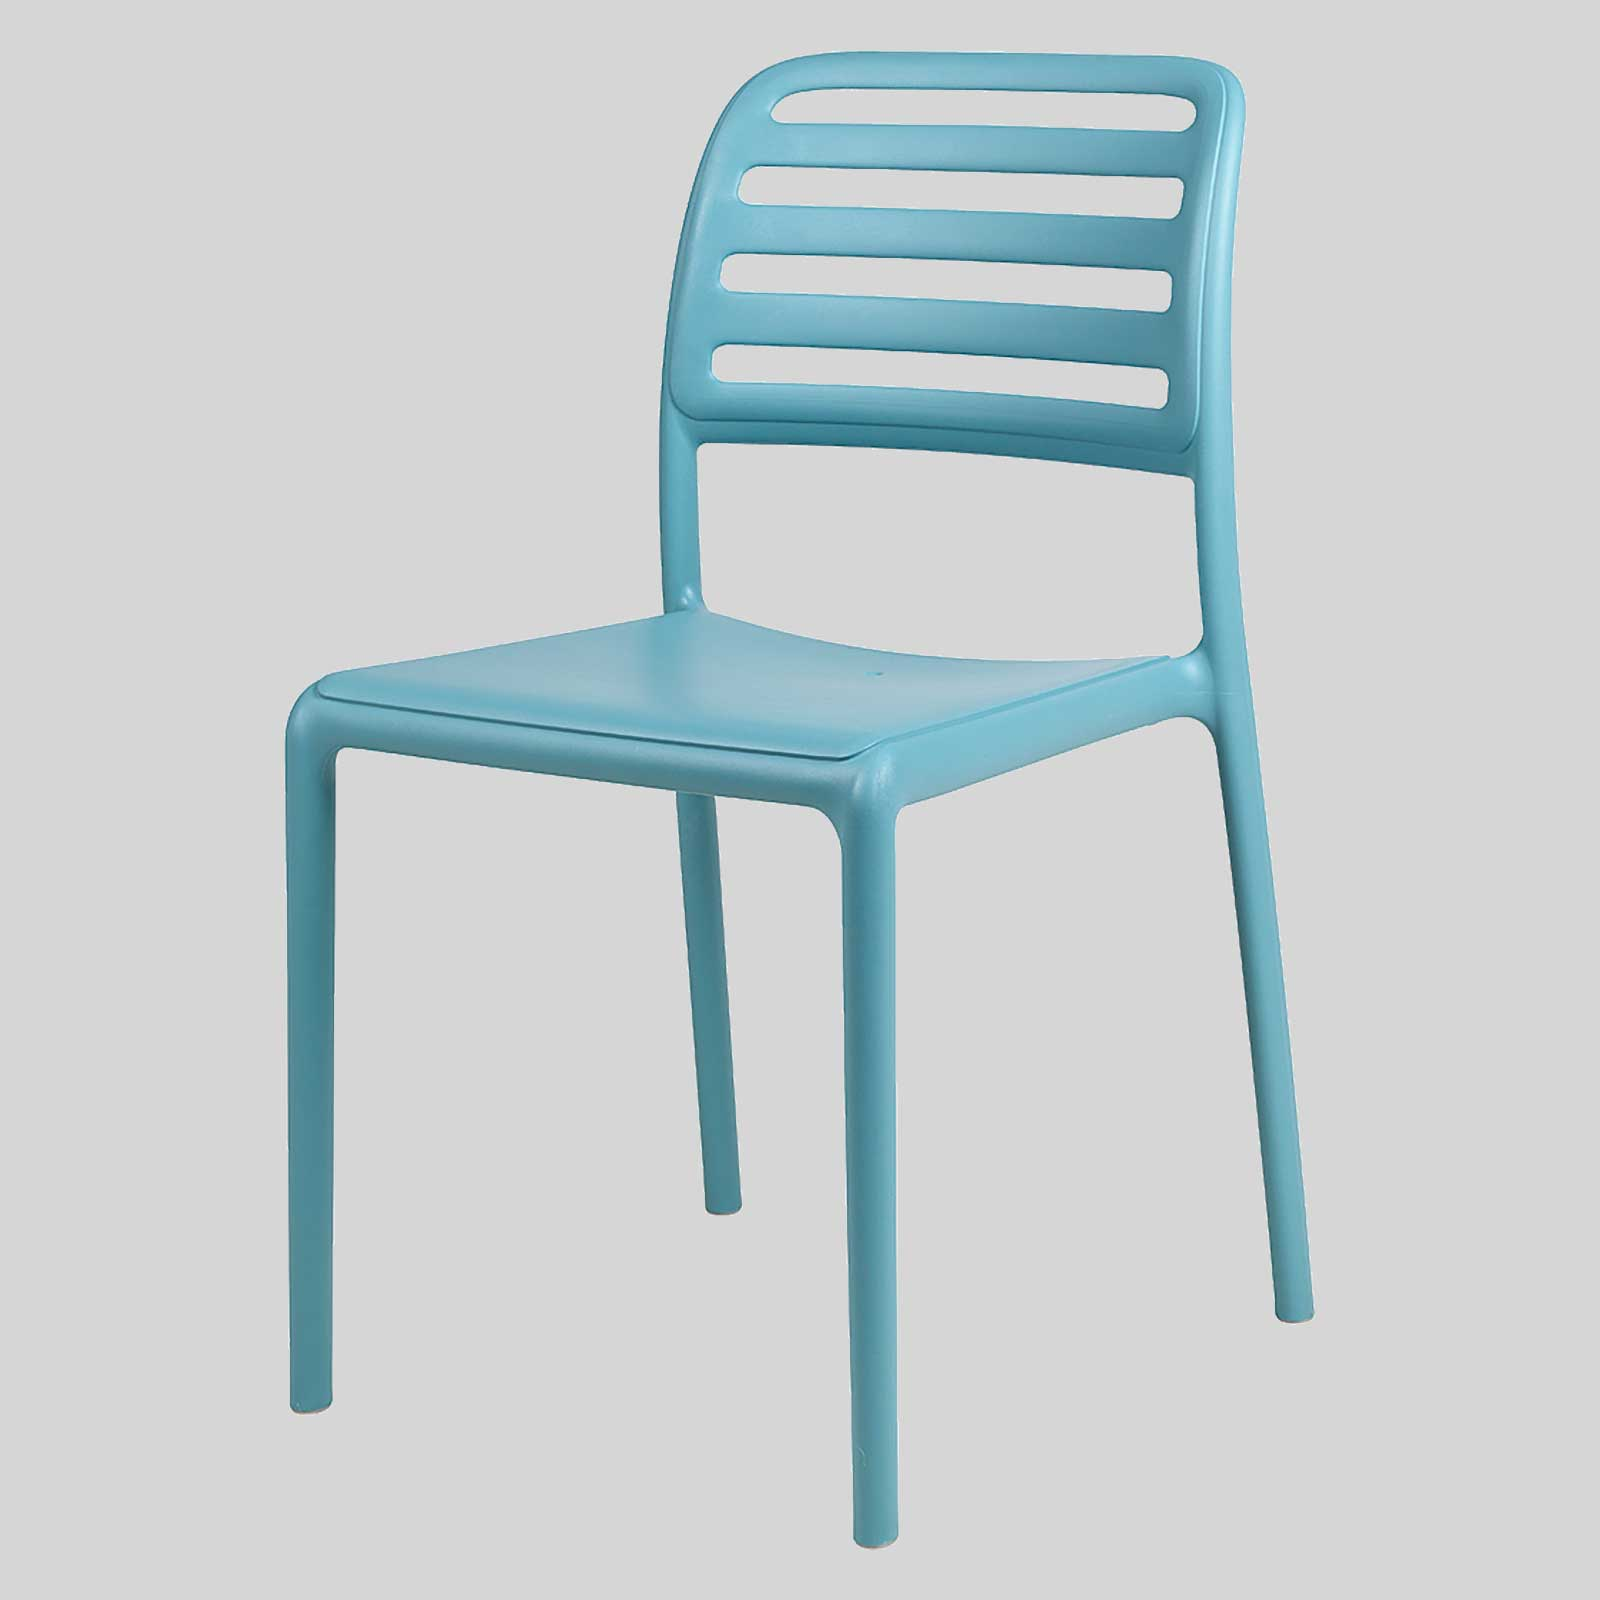 Outdoor cafe chairs - Bosca Outdoor Cafe Chairs Blue